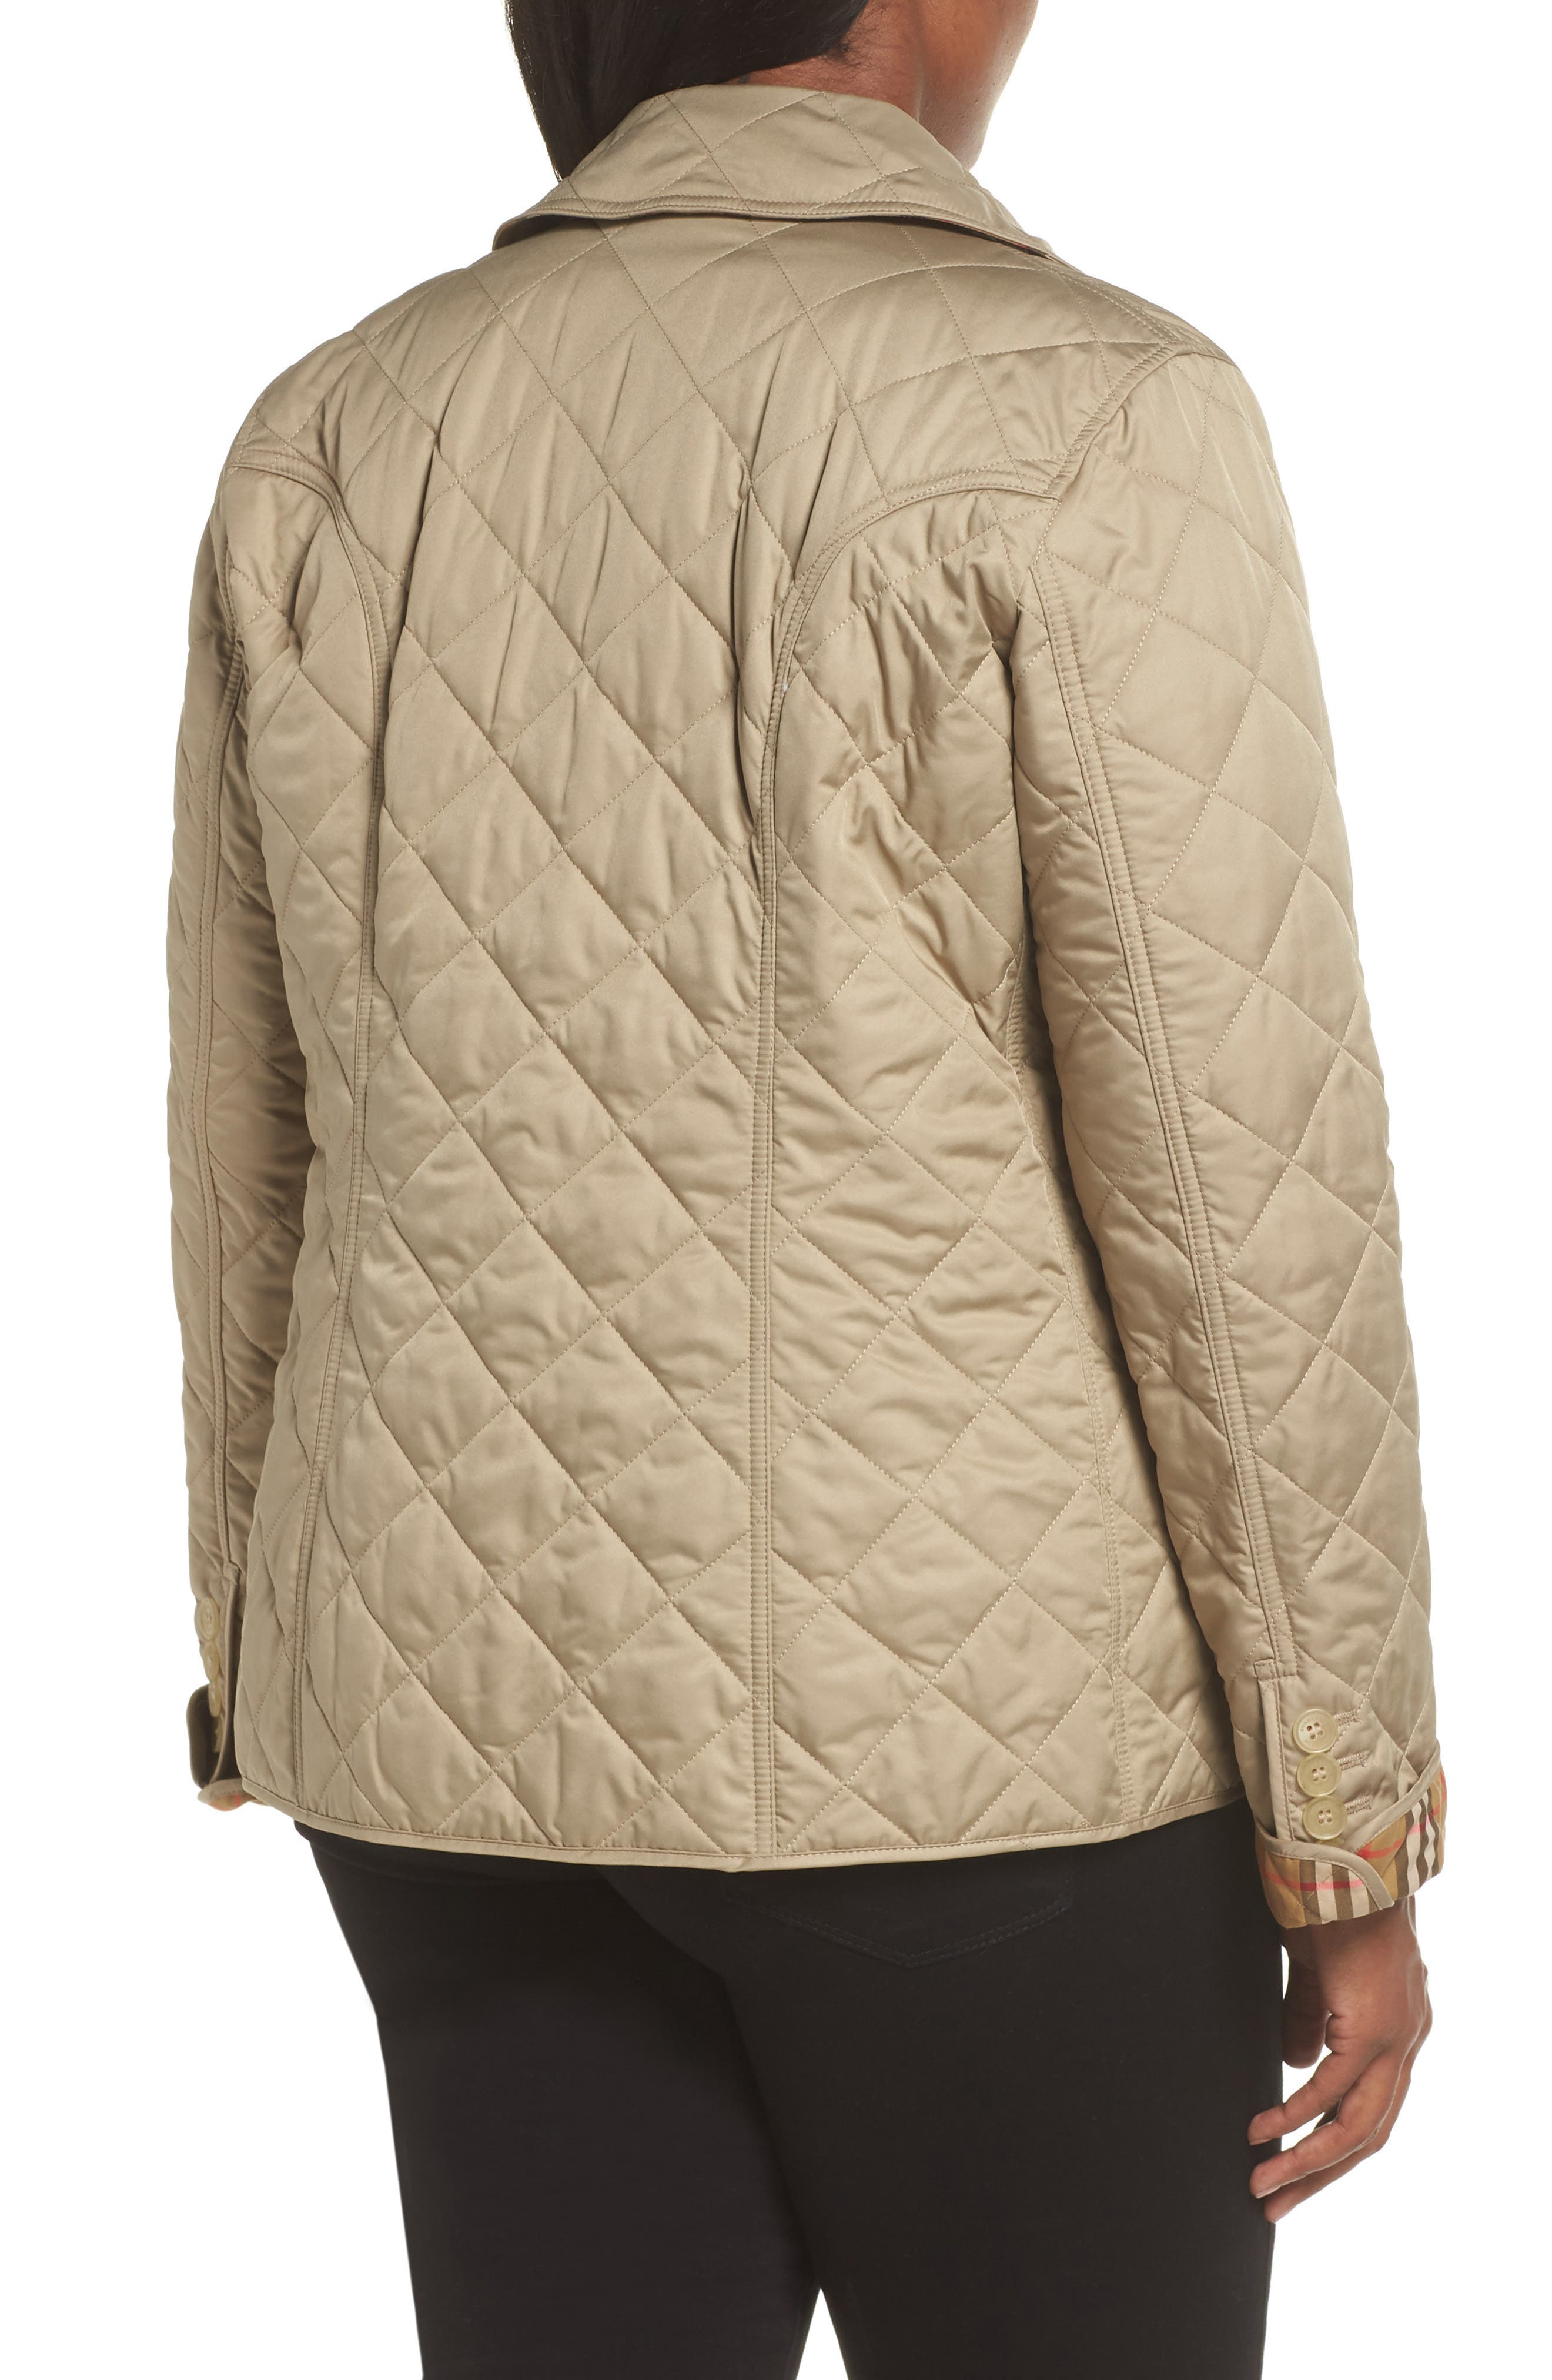 Frankby 18 Quilted Jacket,                             Alternate thumbnail 7, color,                             CANVAS